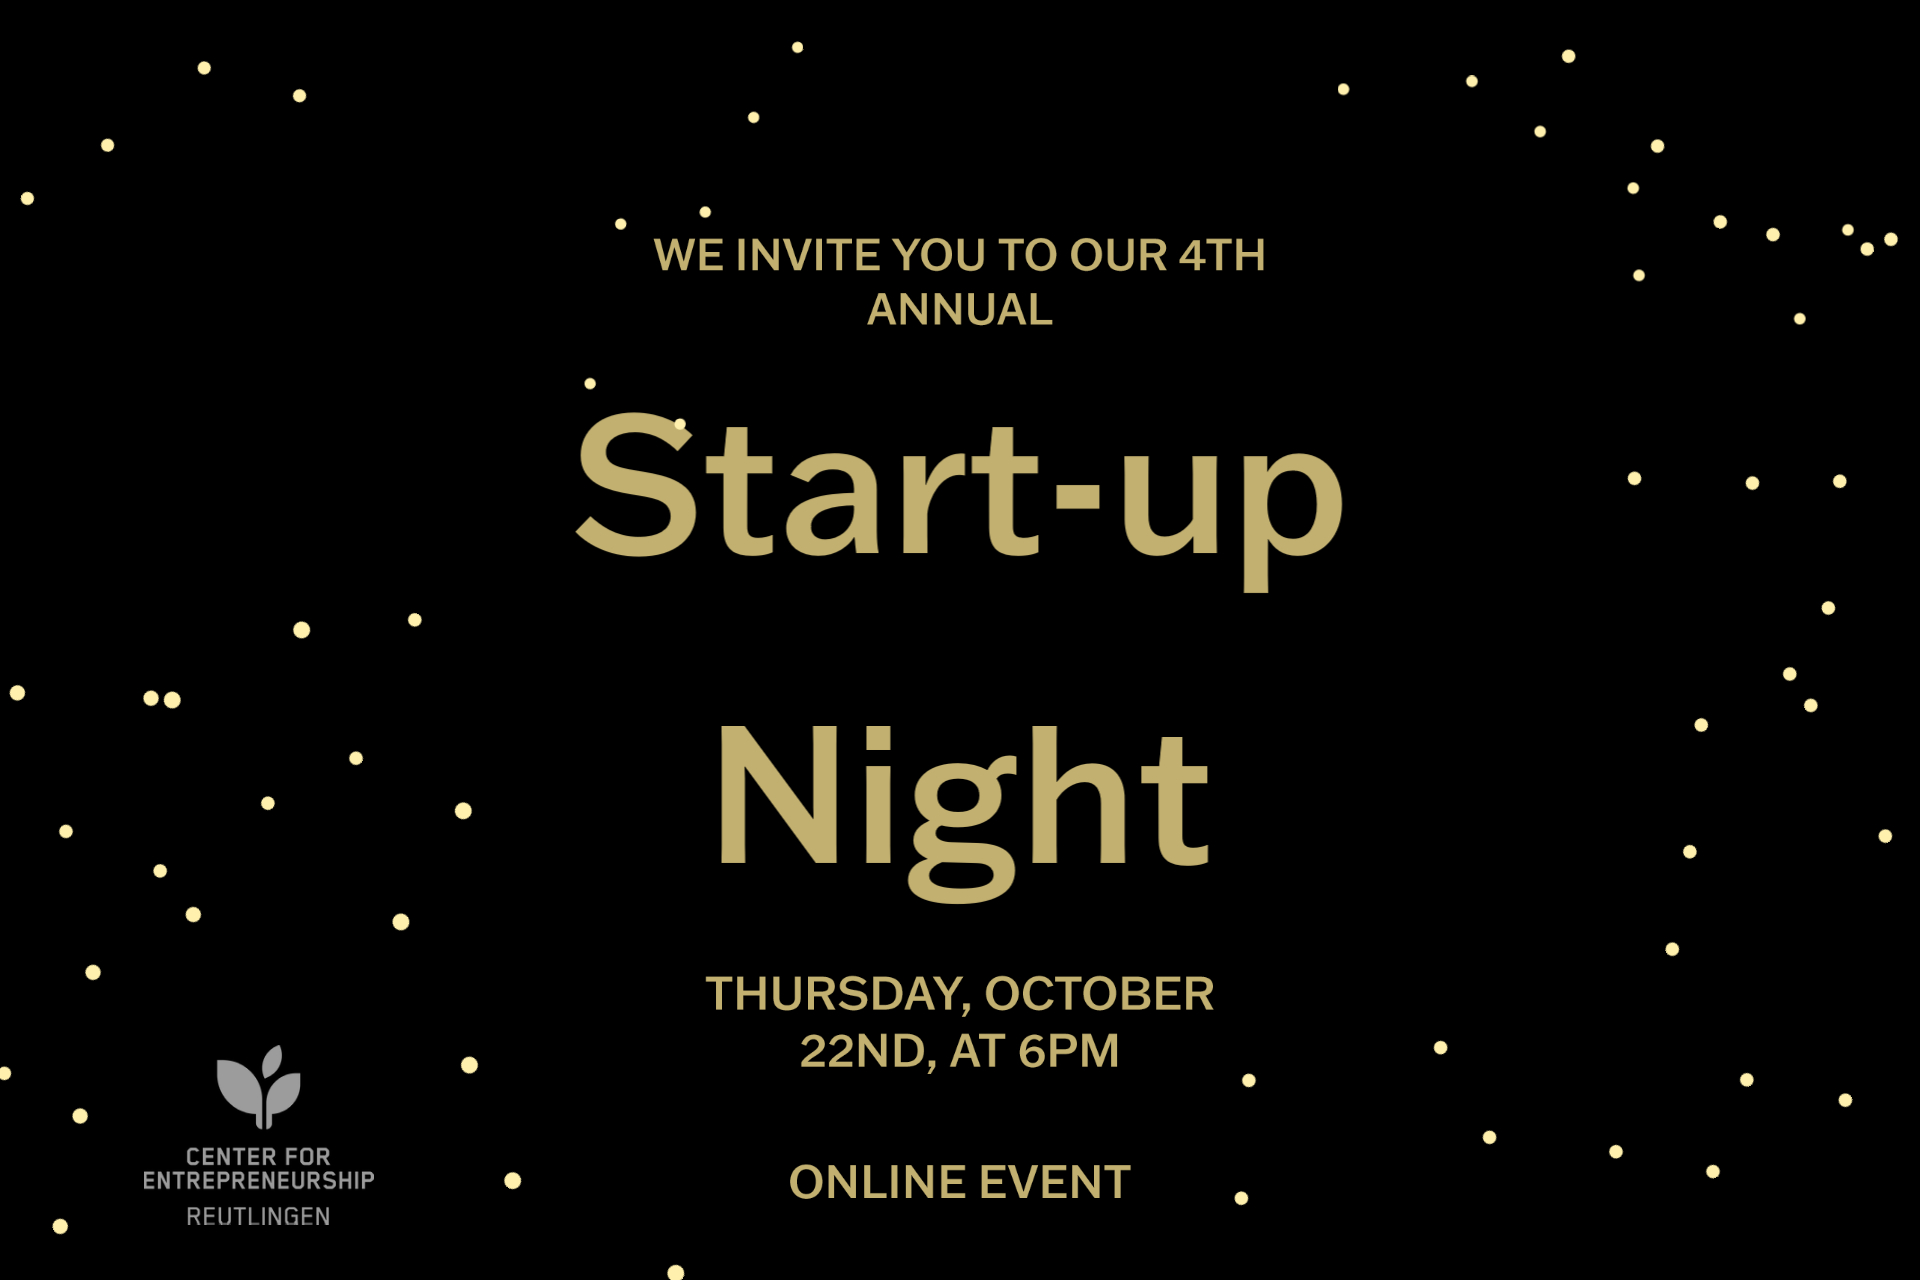 Start-up Night